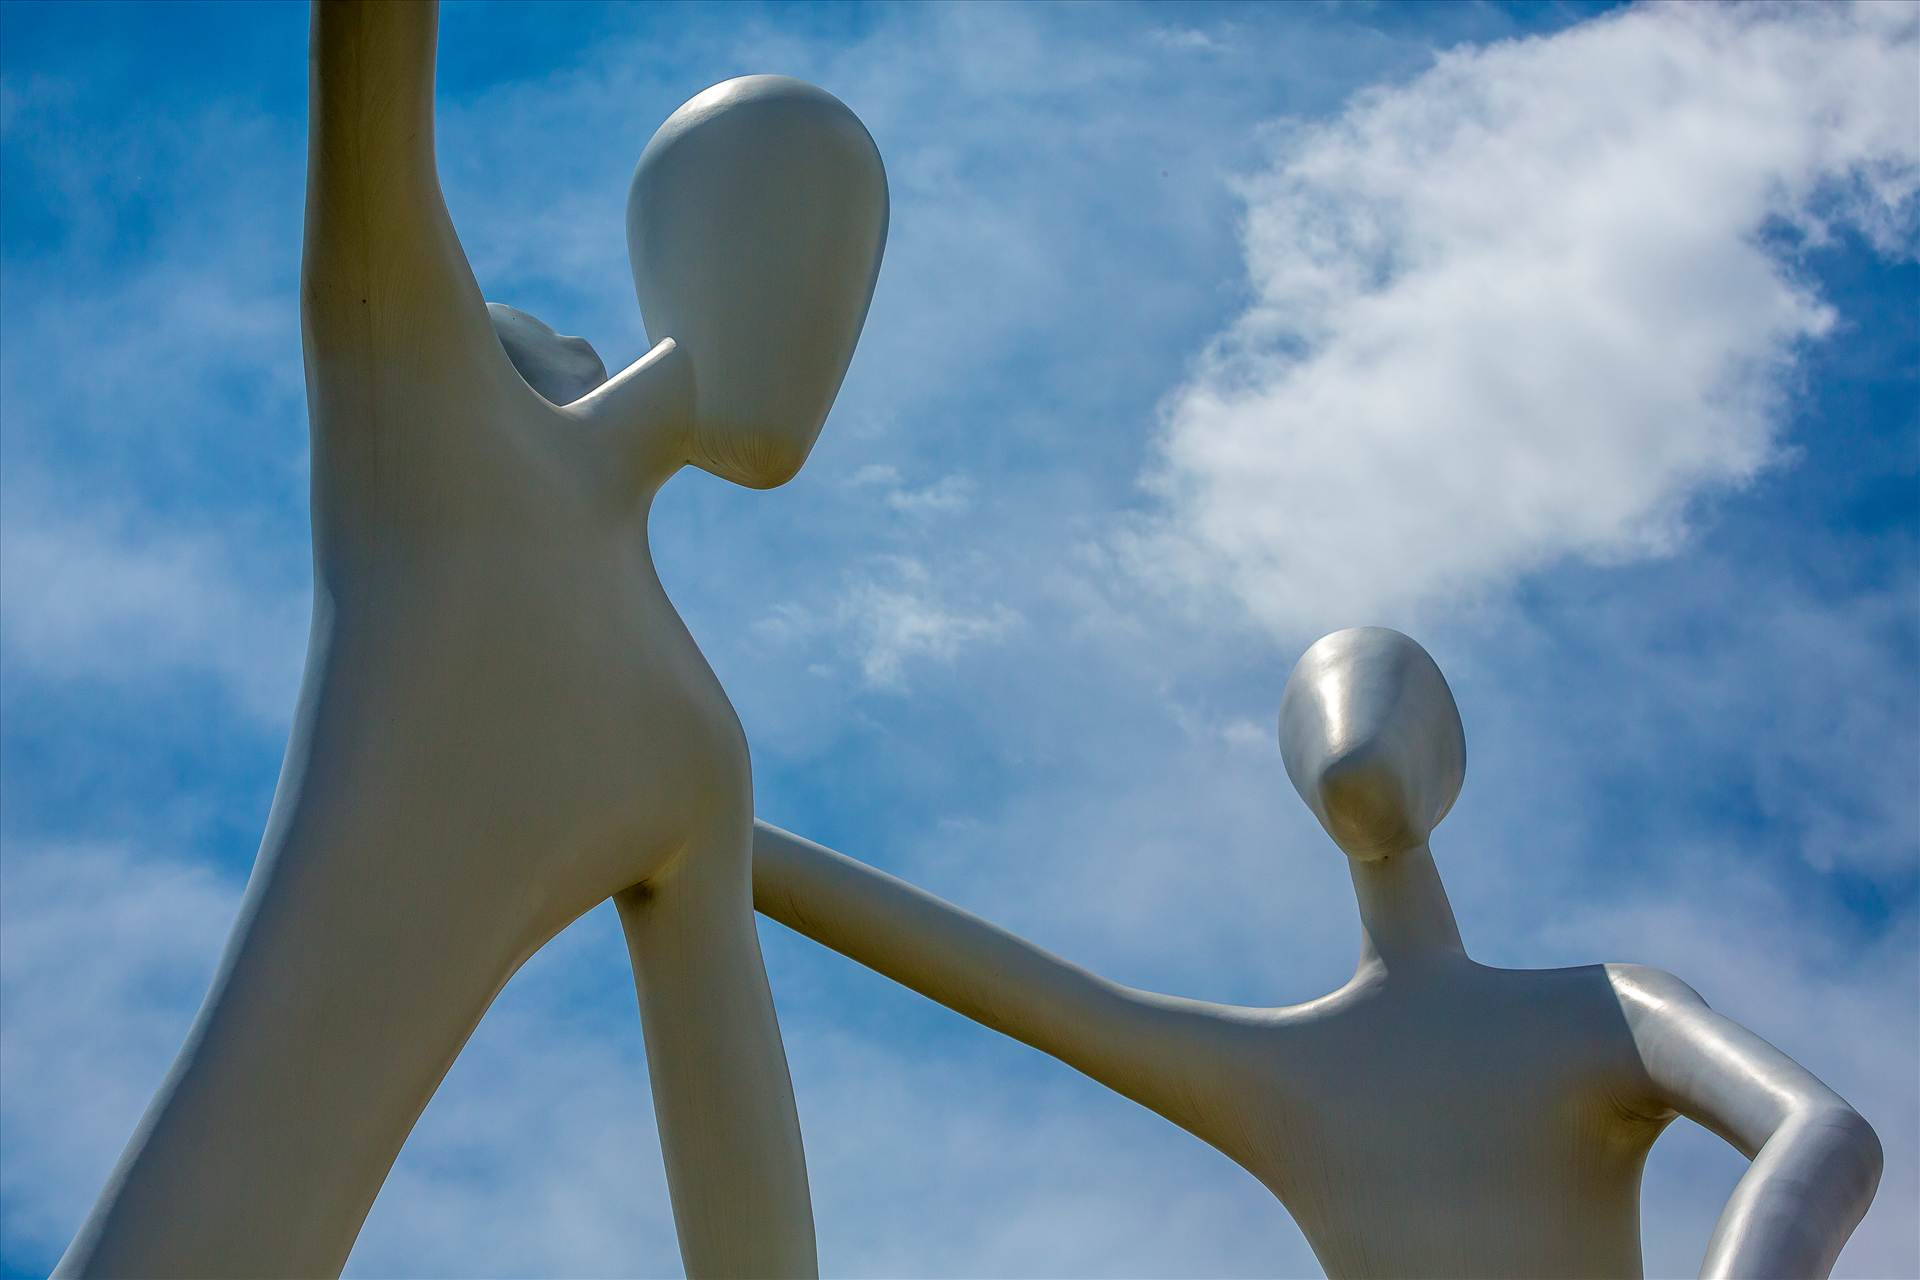 Dancing at the Denver Performing Arts Complex - The famous larger-than-life dancing statues at the Denver Performing Arts Complex. by D Scott Smith